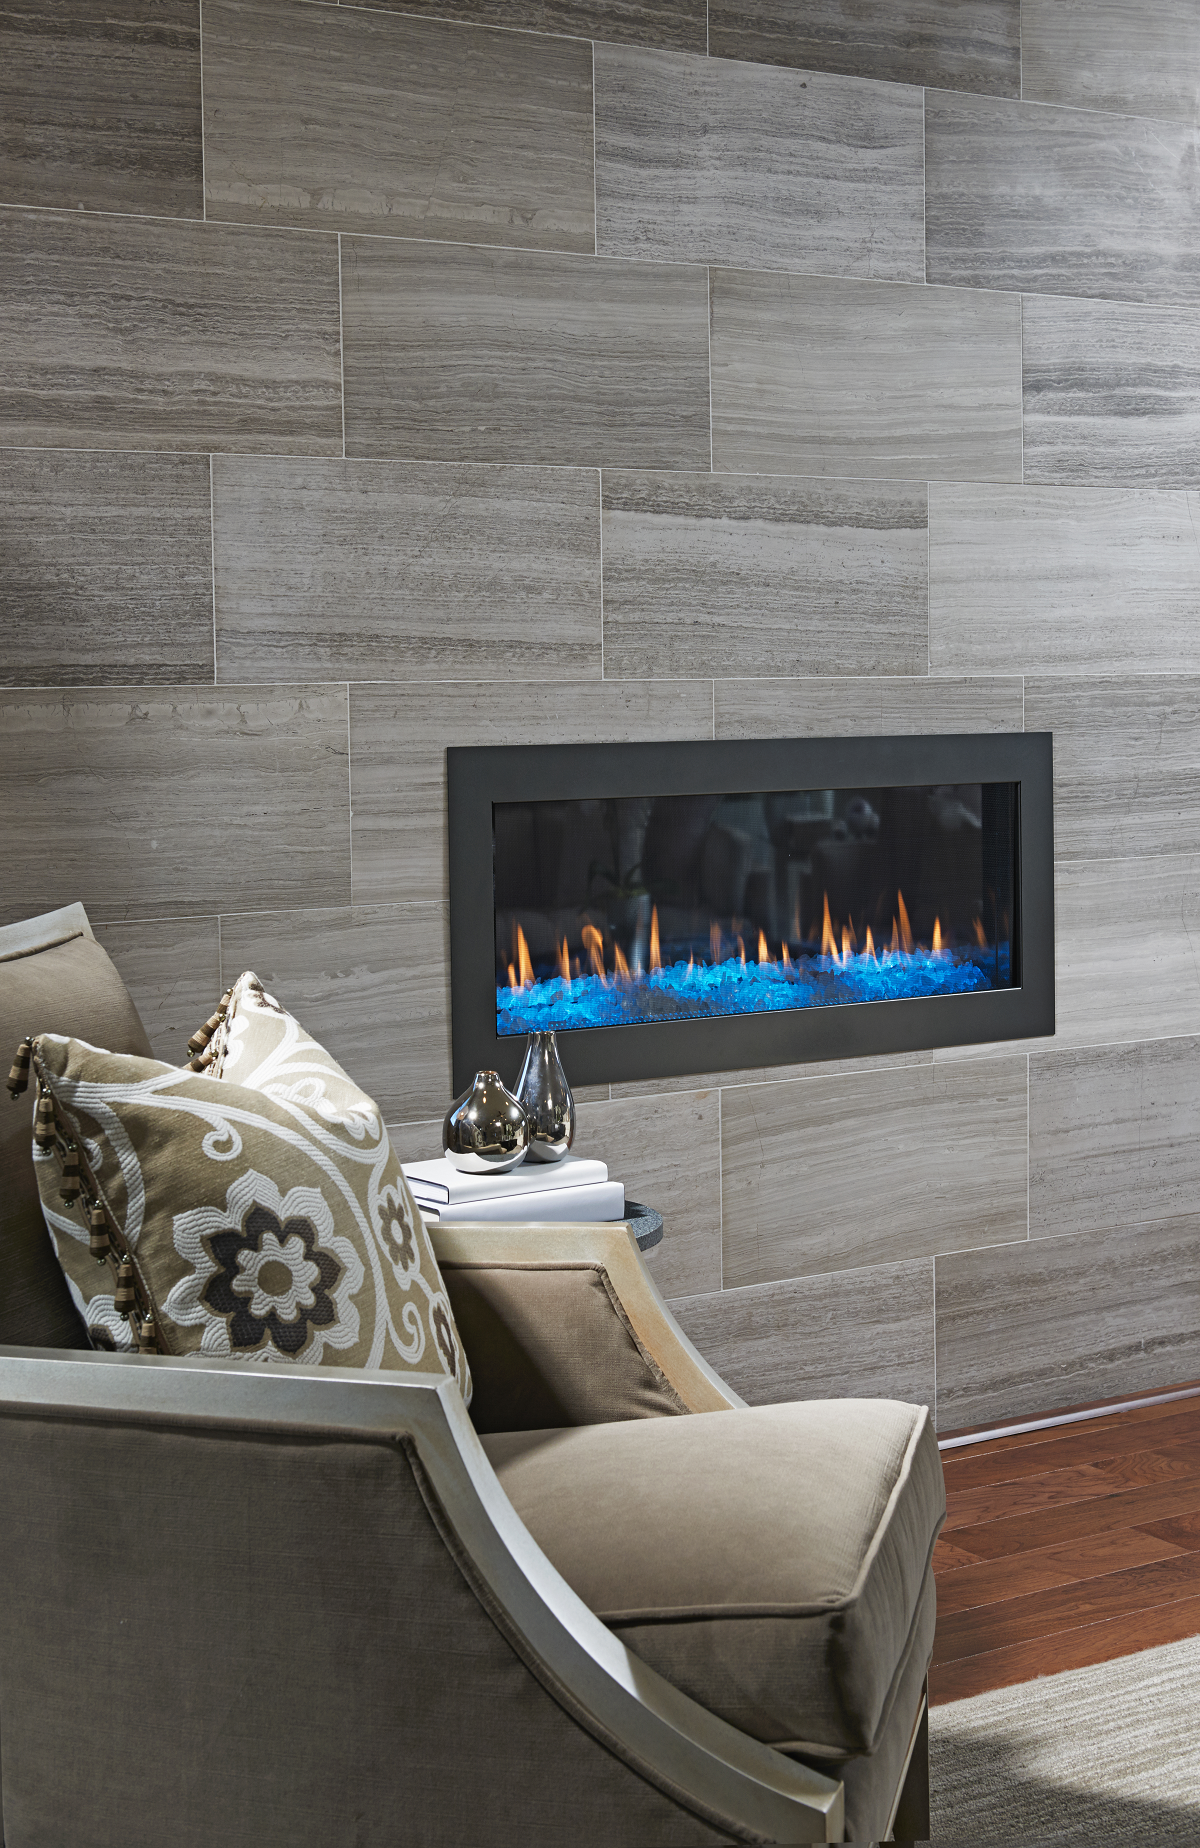 Love The Floor To Ceiling Tile Surround On This Fireplace In The